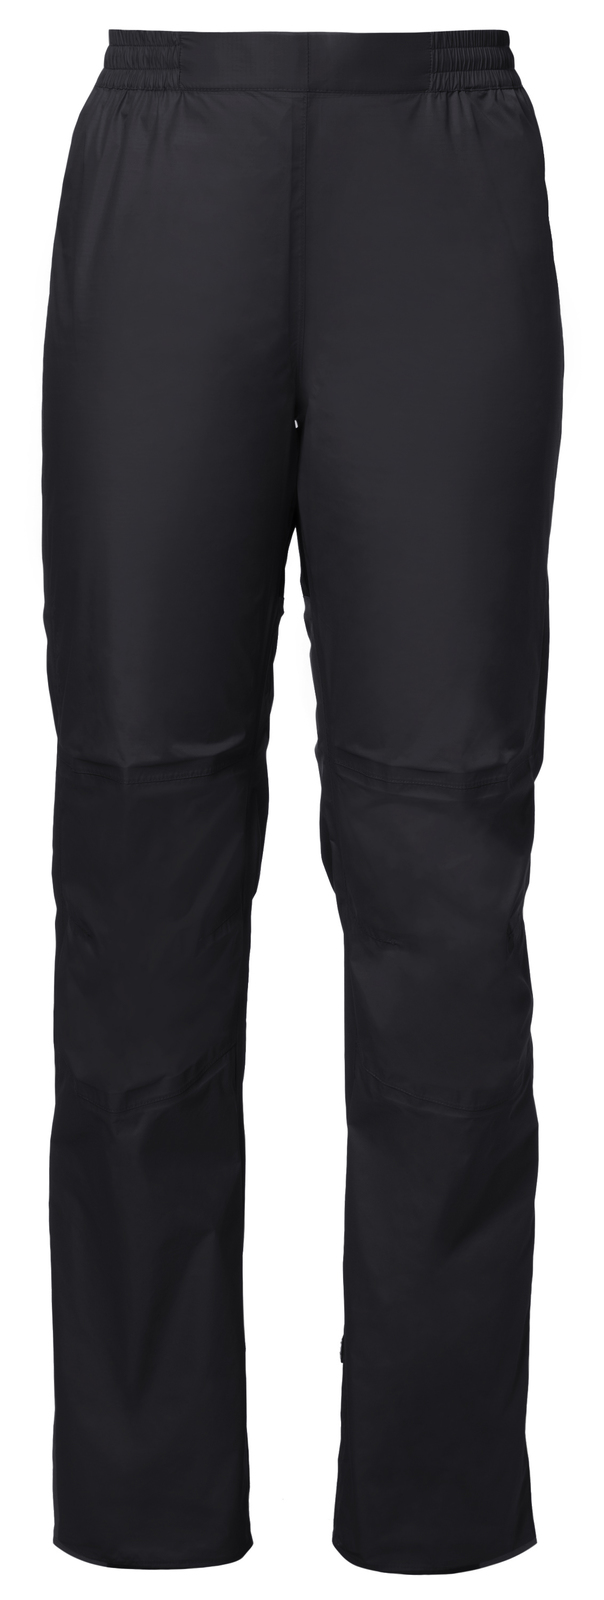 VAUDE Women´s Drop Pants II black Größe 34 - schneider-sports